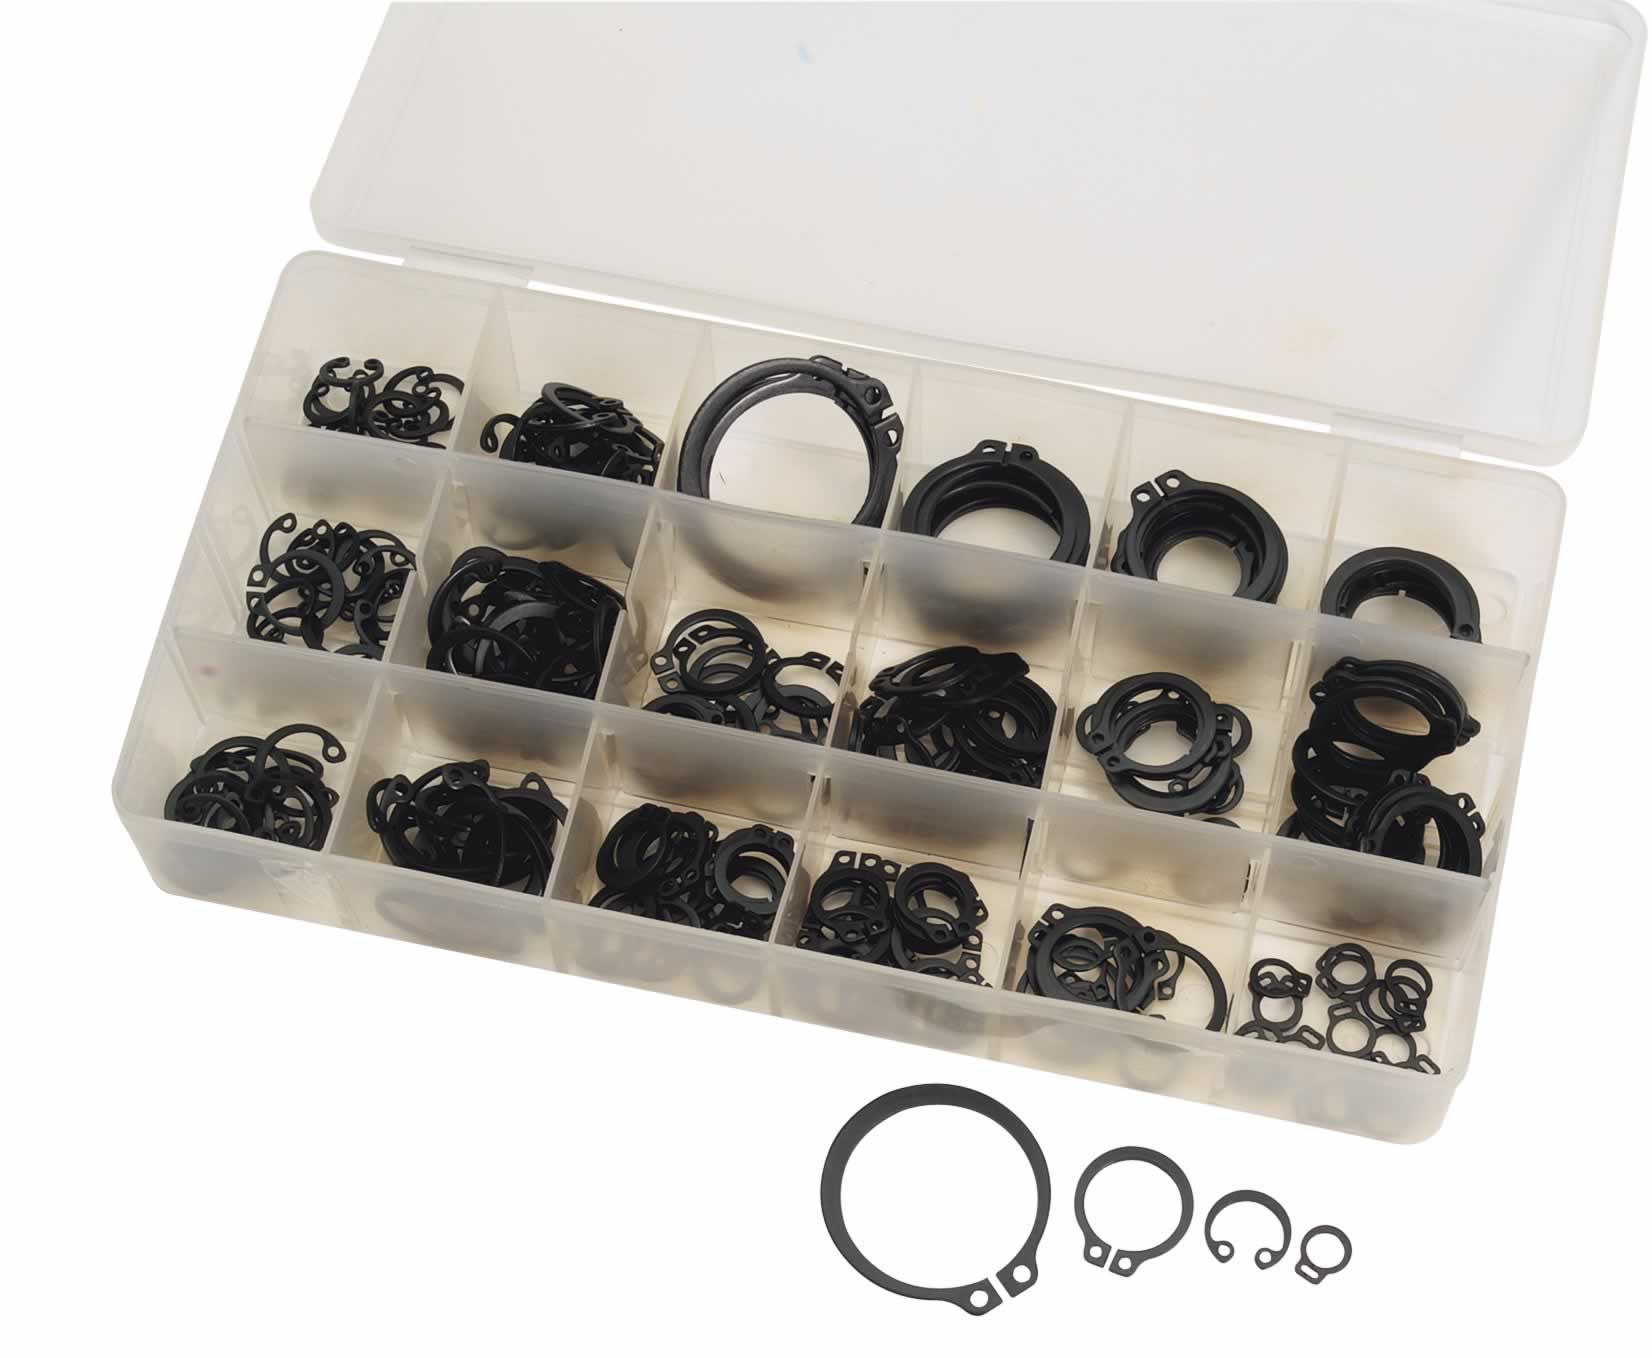 285 PIECE INTERNAL AND EXTERNAL CIRCLIP ASSORTMENT